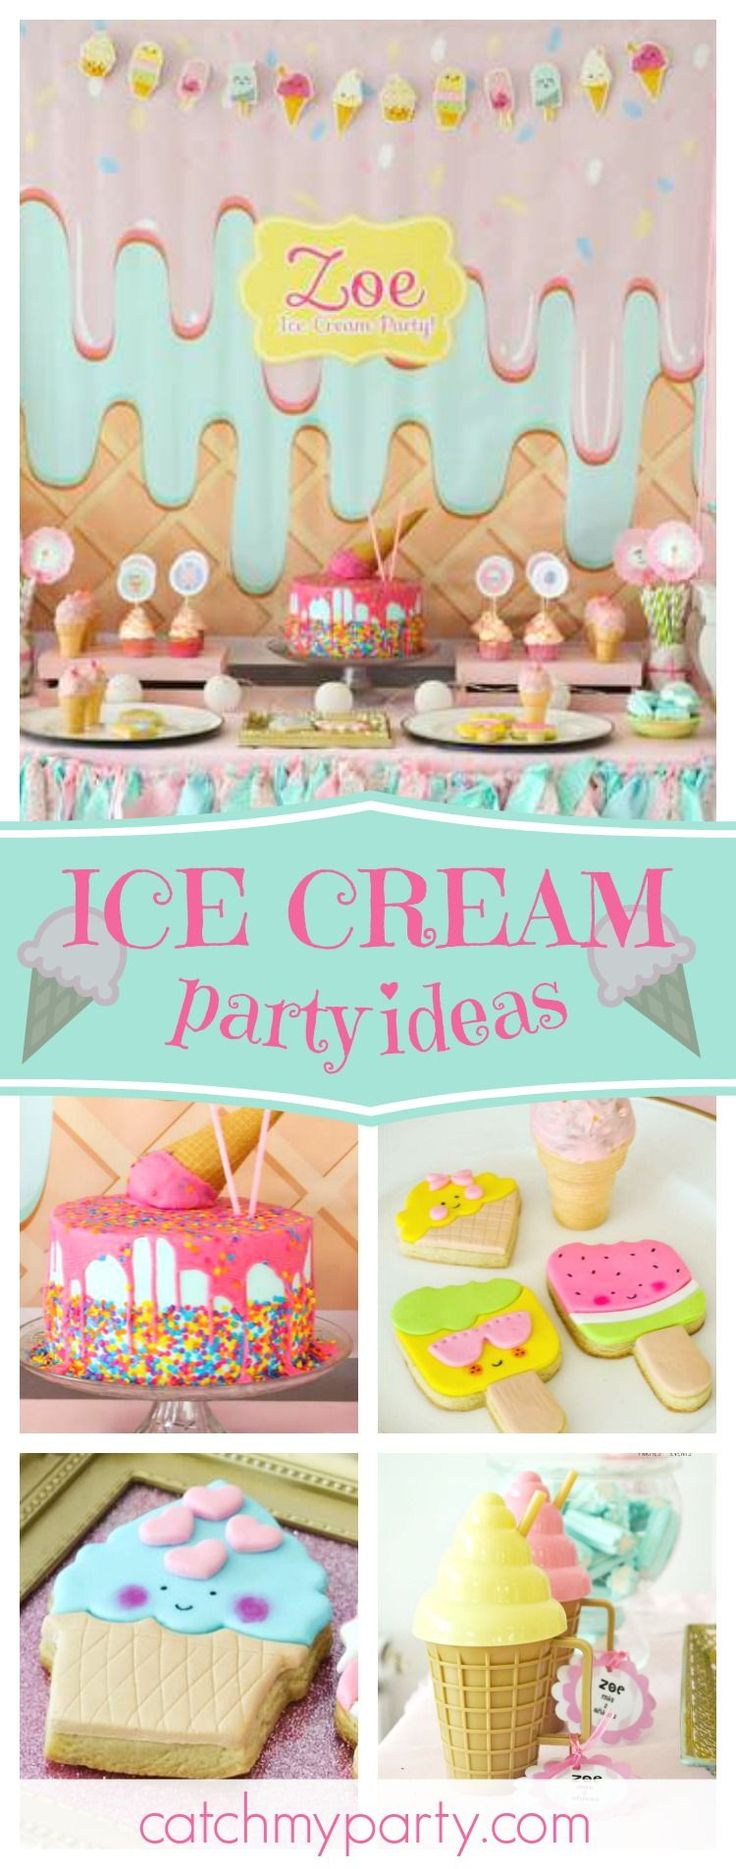 Take a look at this delicious ice cream birthday party! The birthday cake is amazing!! See more party ideas and share yours at CatchMyParty.com #catchmyparty #partyideas #icecream #girlbirthday